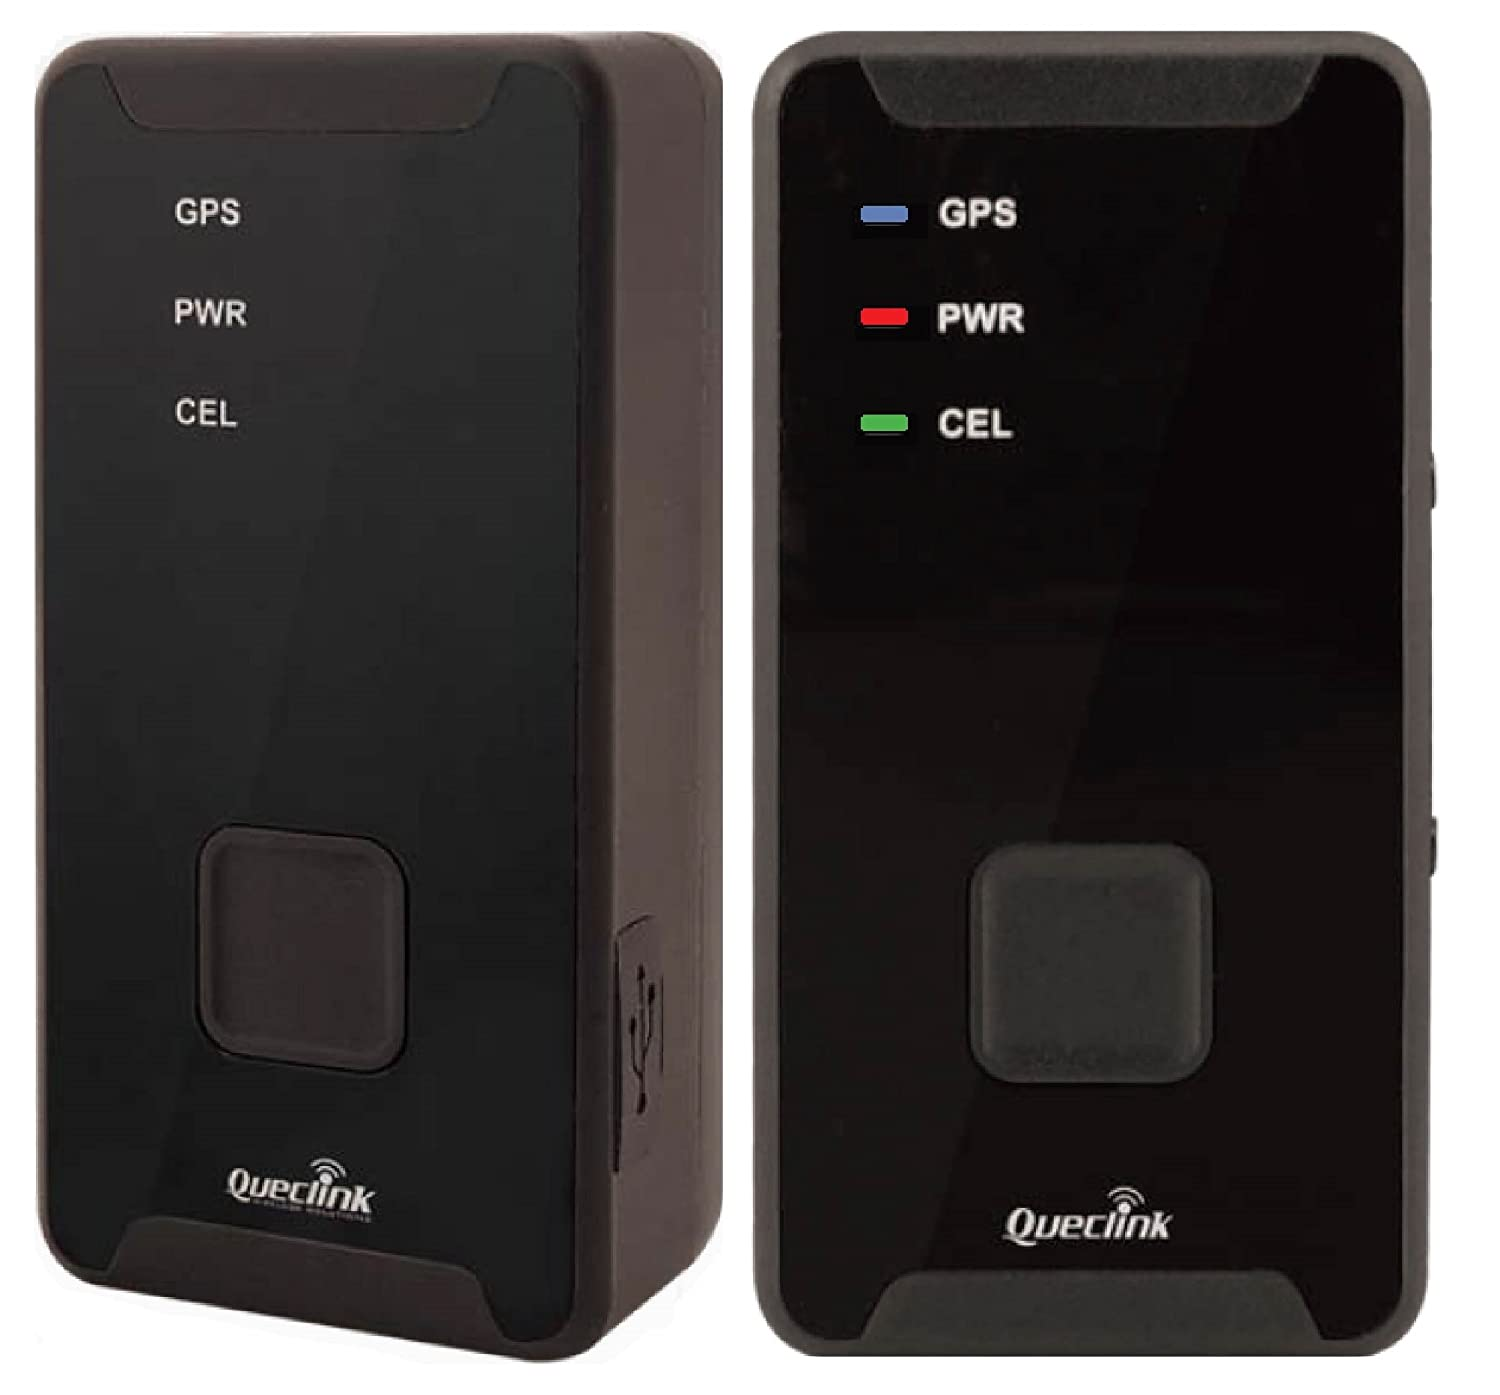 New Version Gl W Mini Portable Real Time Gps Tracker Vehicle Personal Asset Tracking Americaloc Tracking